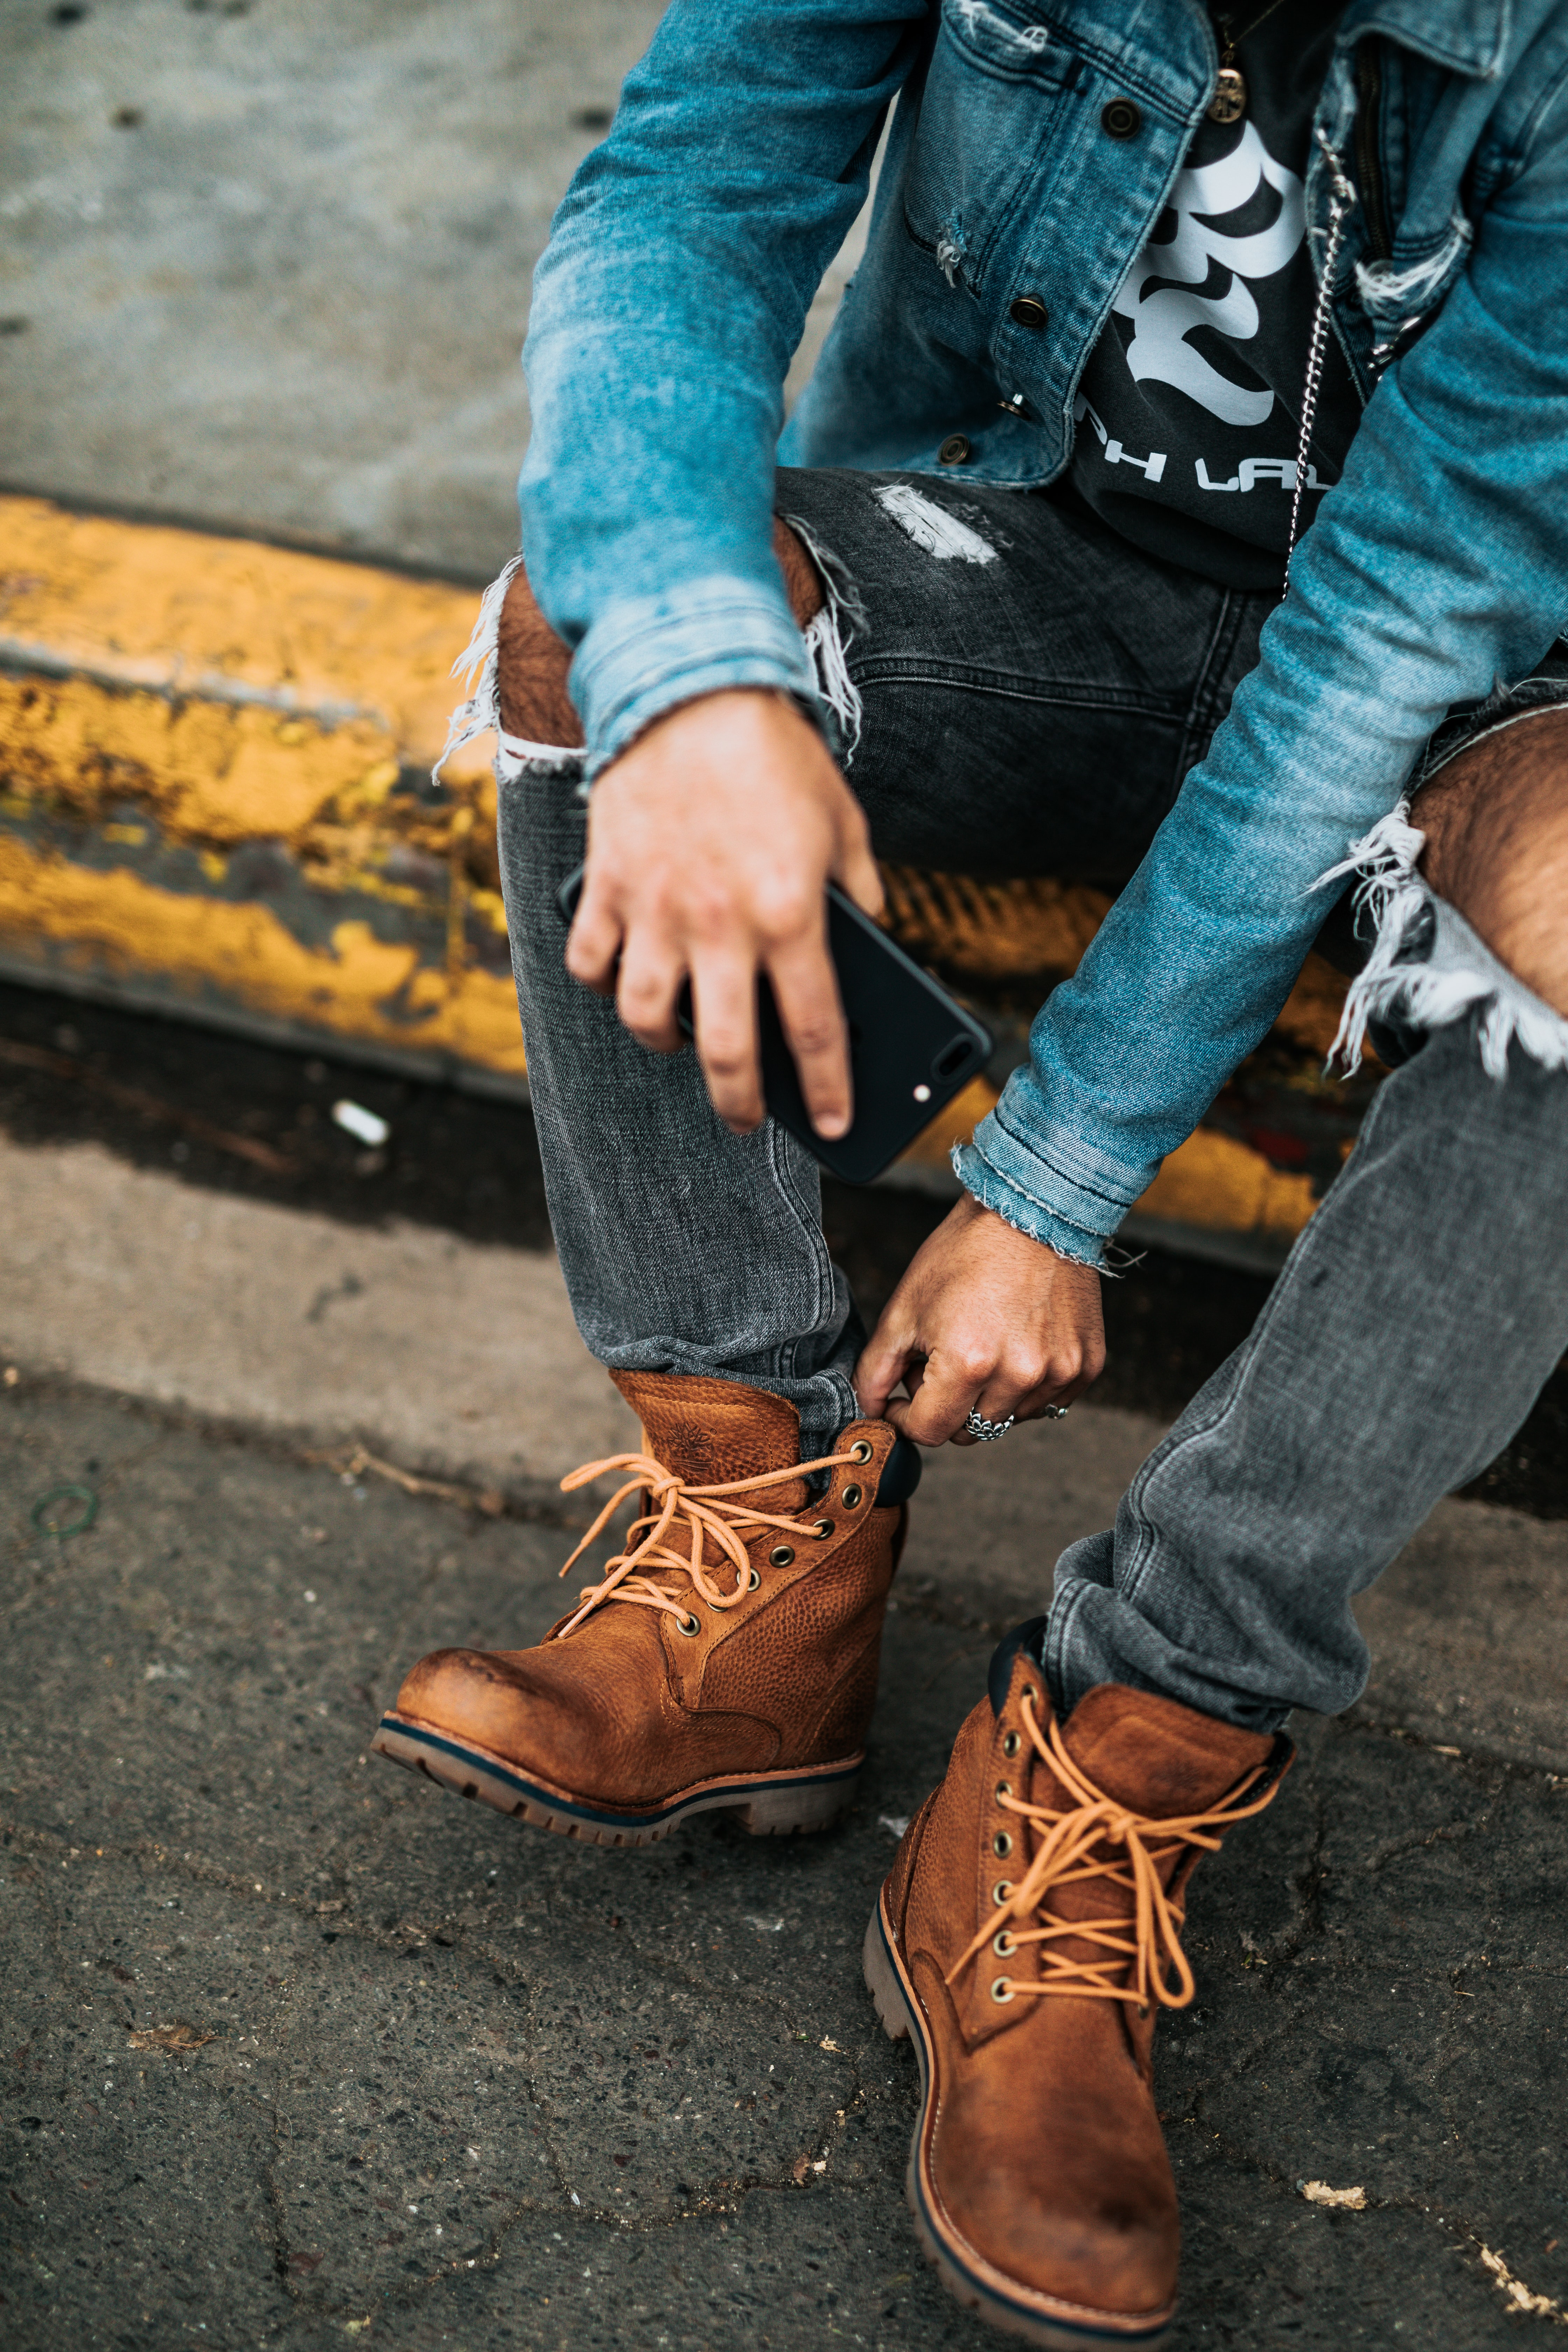 person wearing pair of brown boots, distressed fitted jeans, and denim jacket